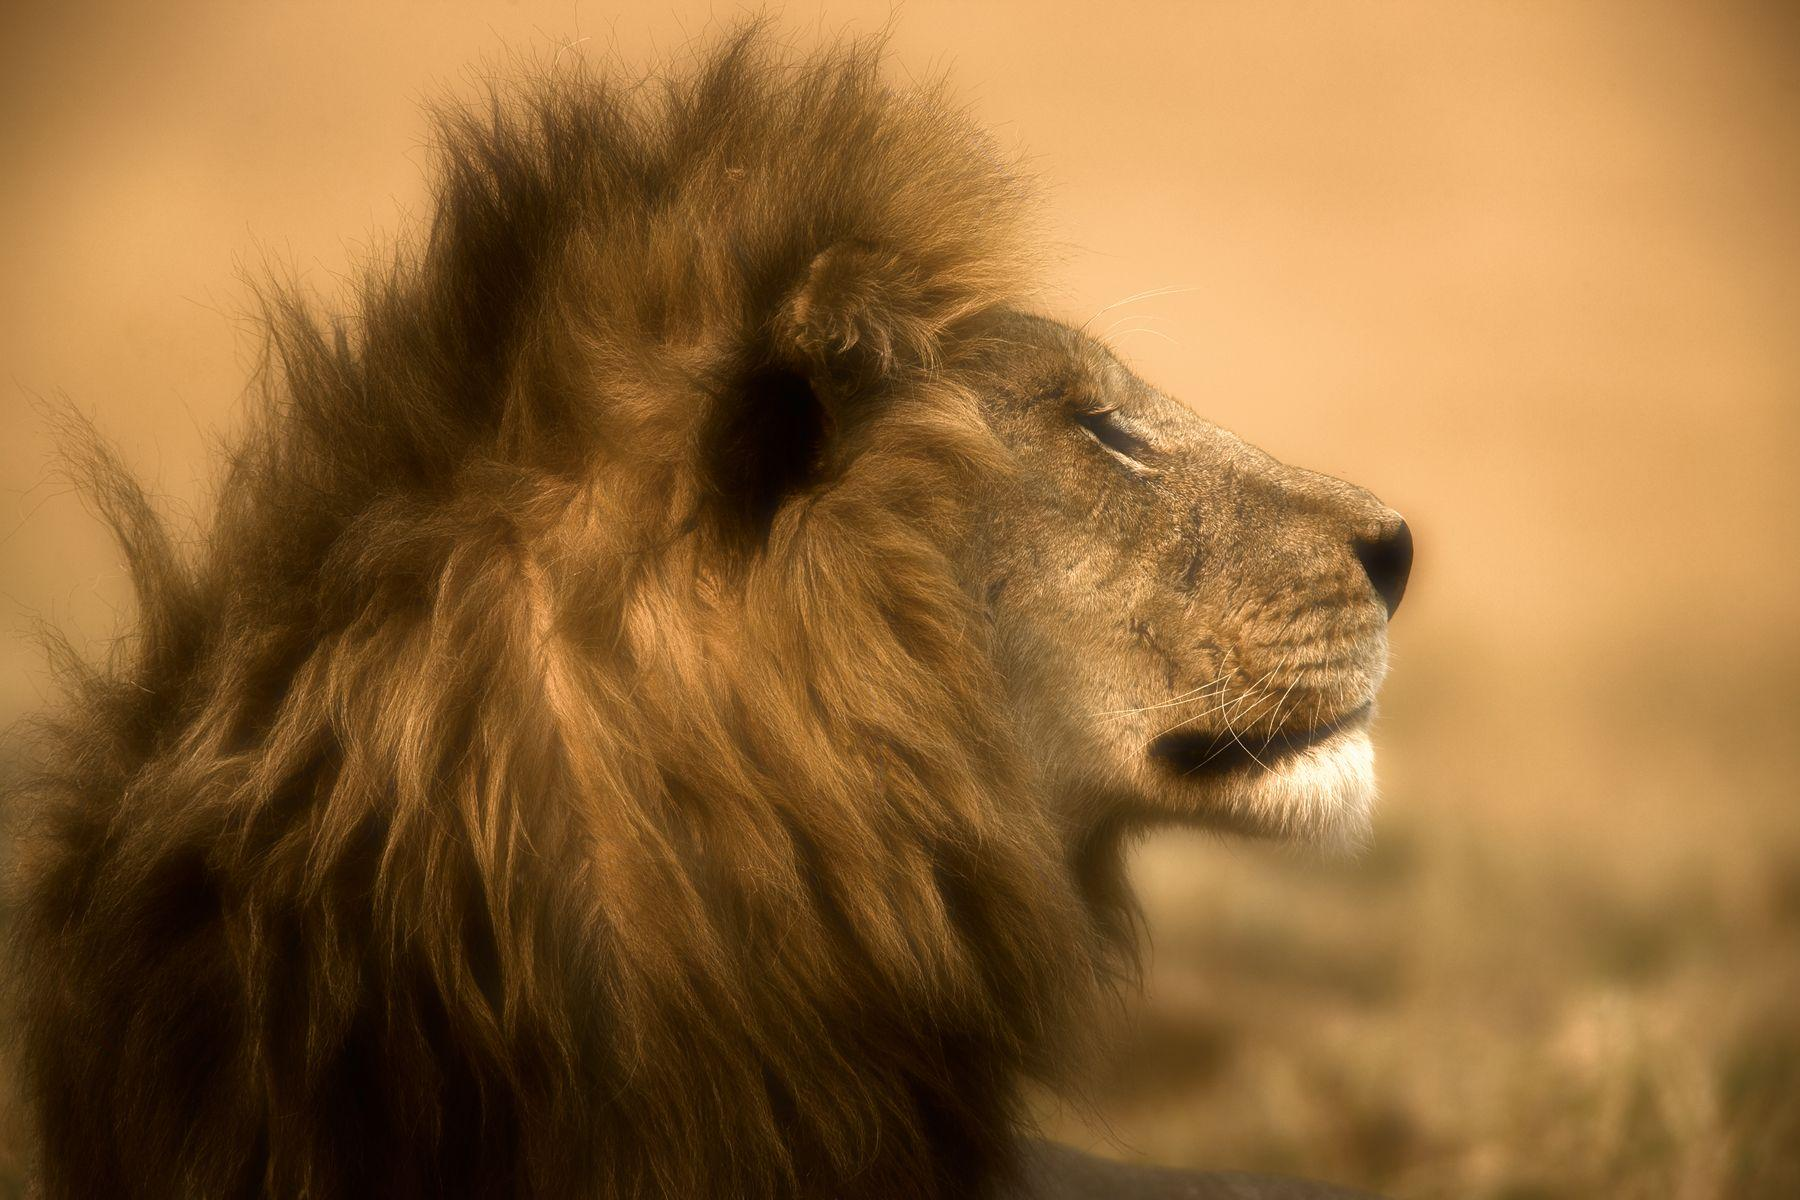 Lion HD Wallpapers | Lion HD Pictures | Free Download – HD ...